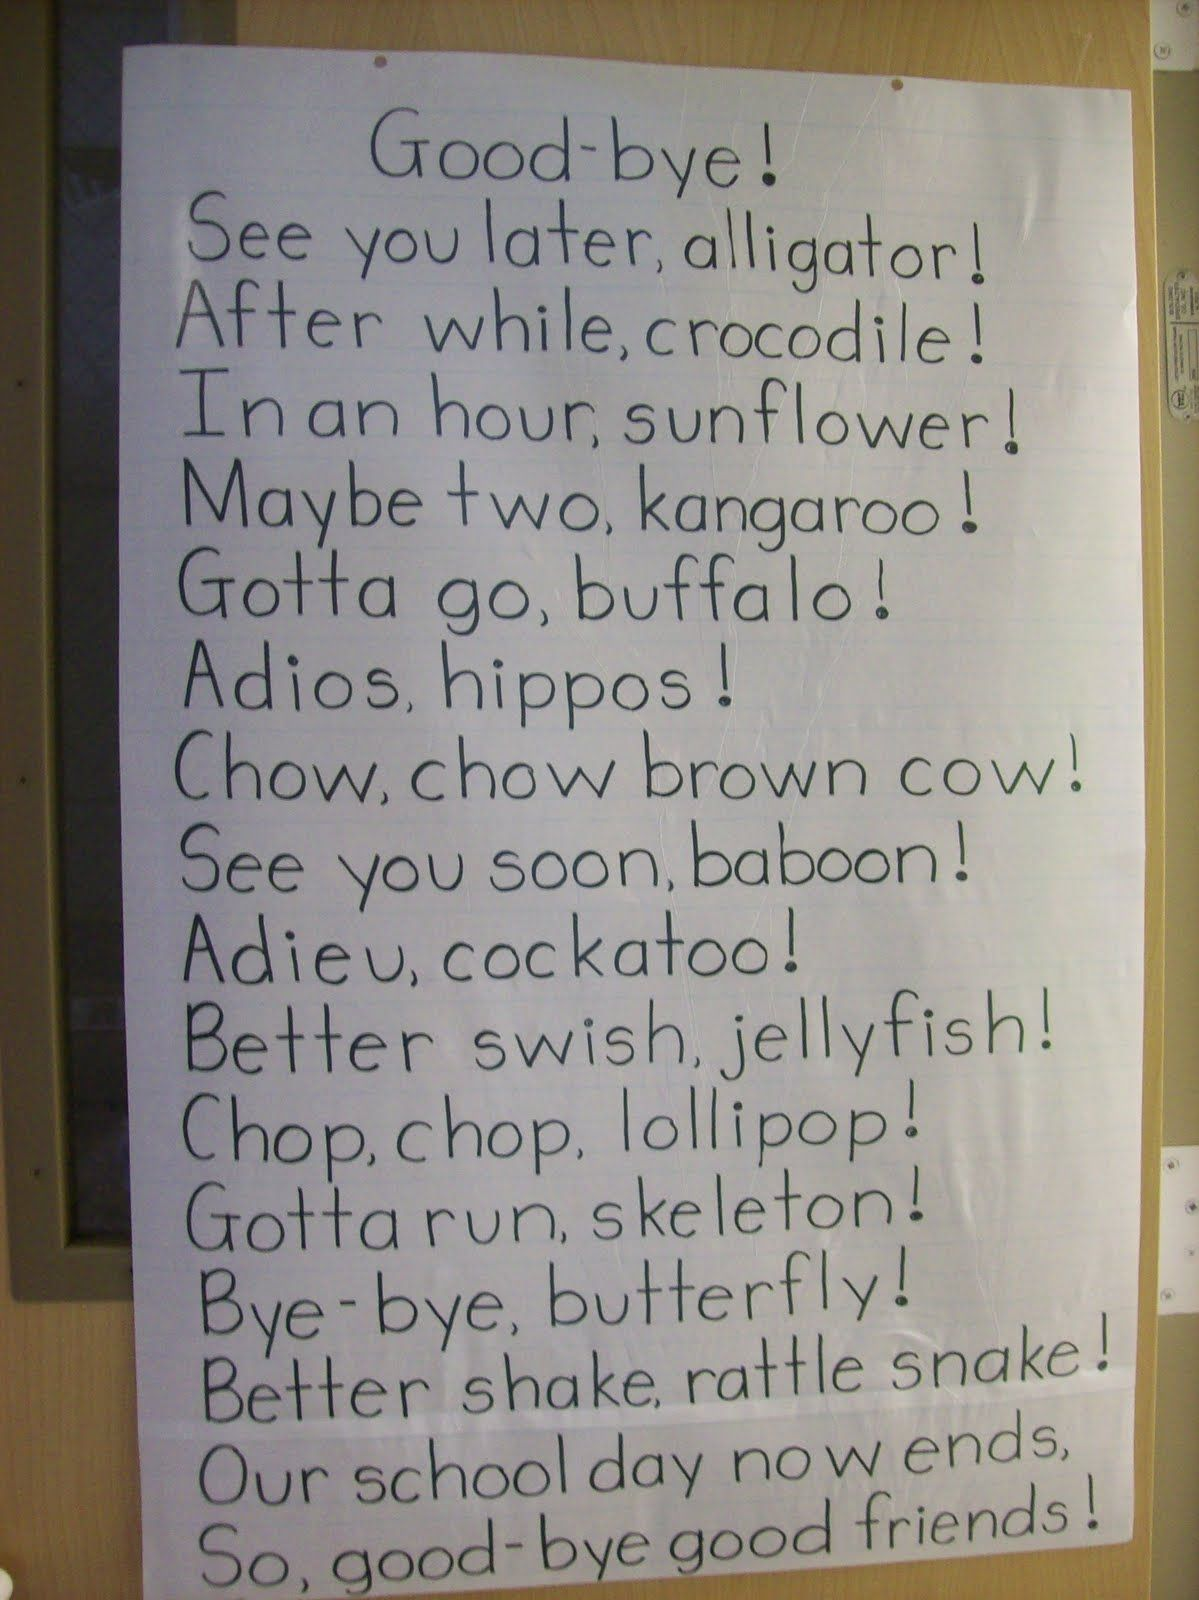 Fun Ways To Say Good Bye.my Fav That We Say Is Better Swish Jellyfish!